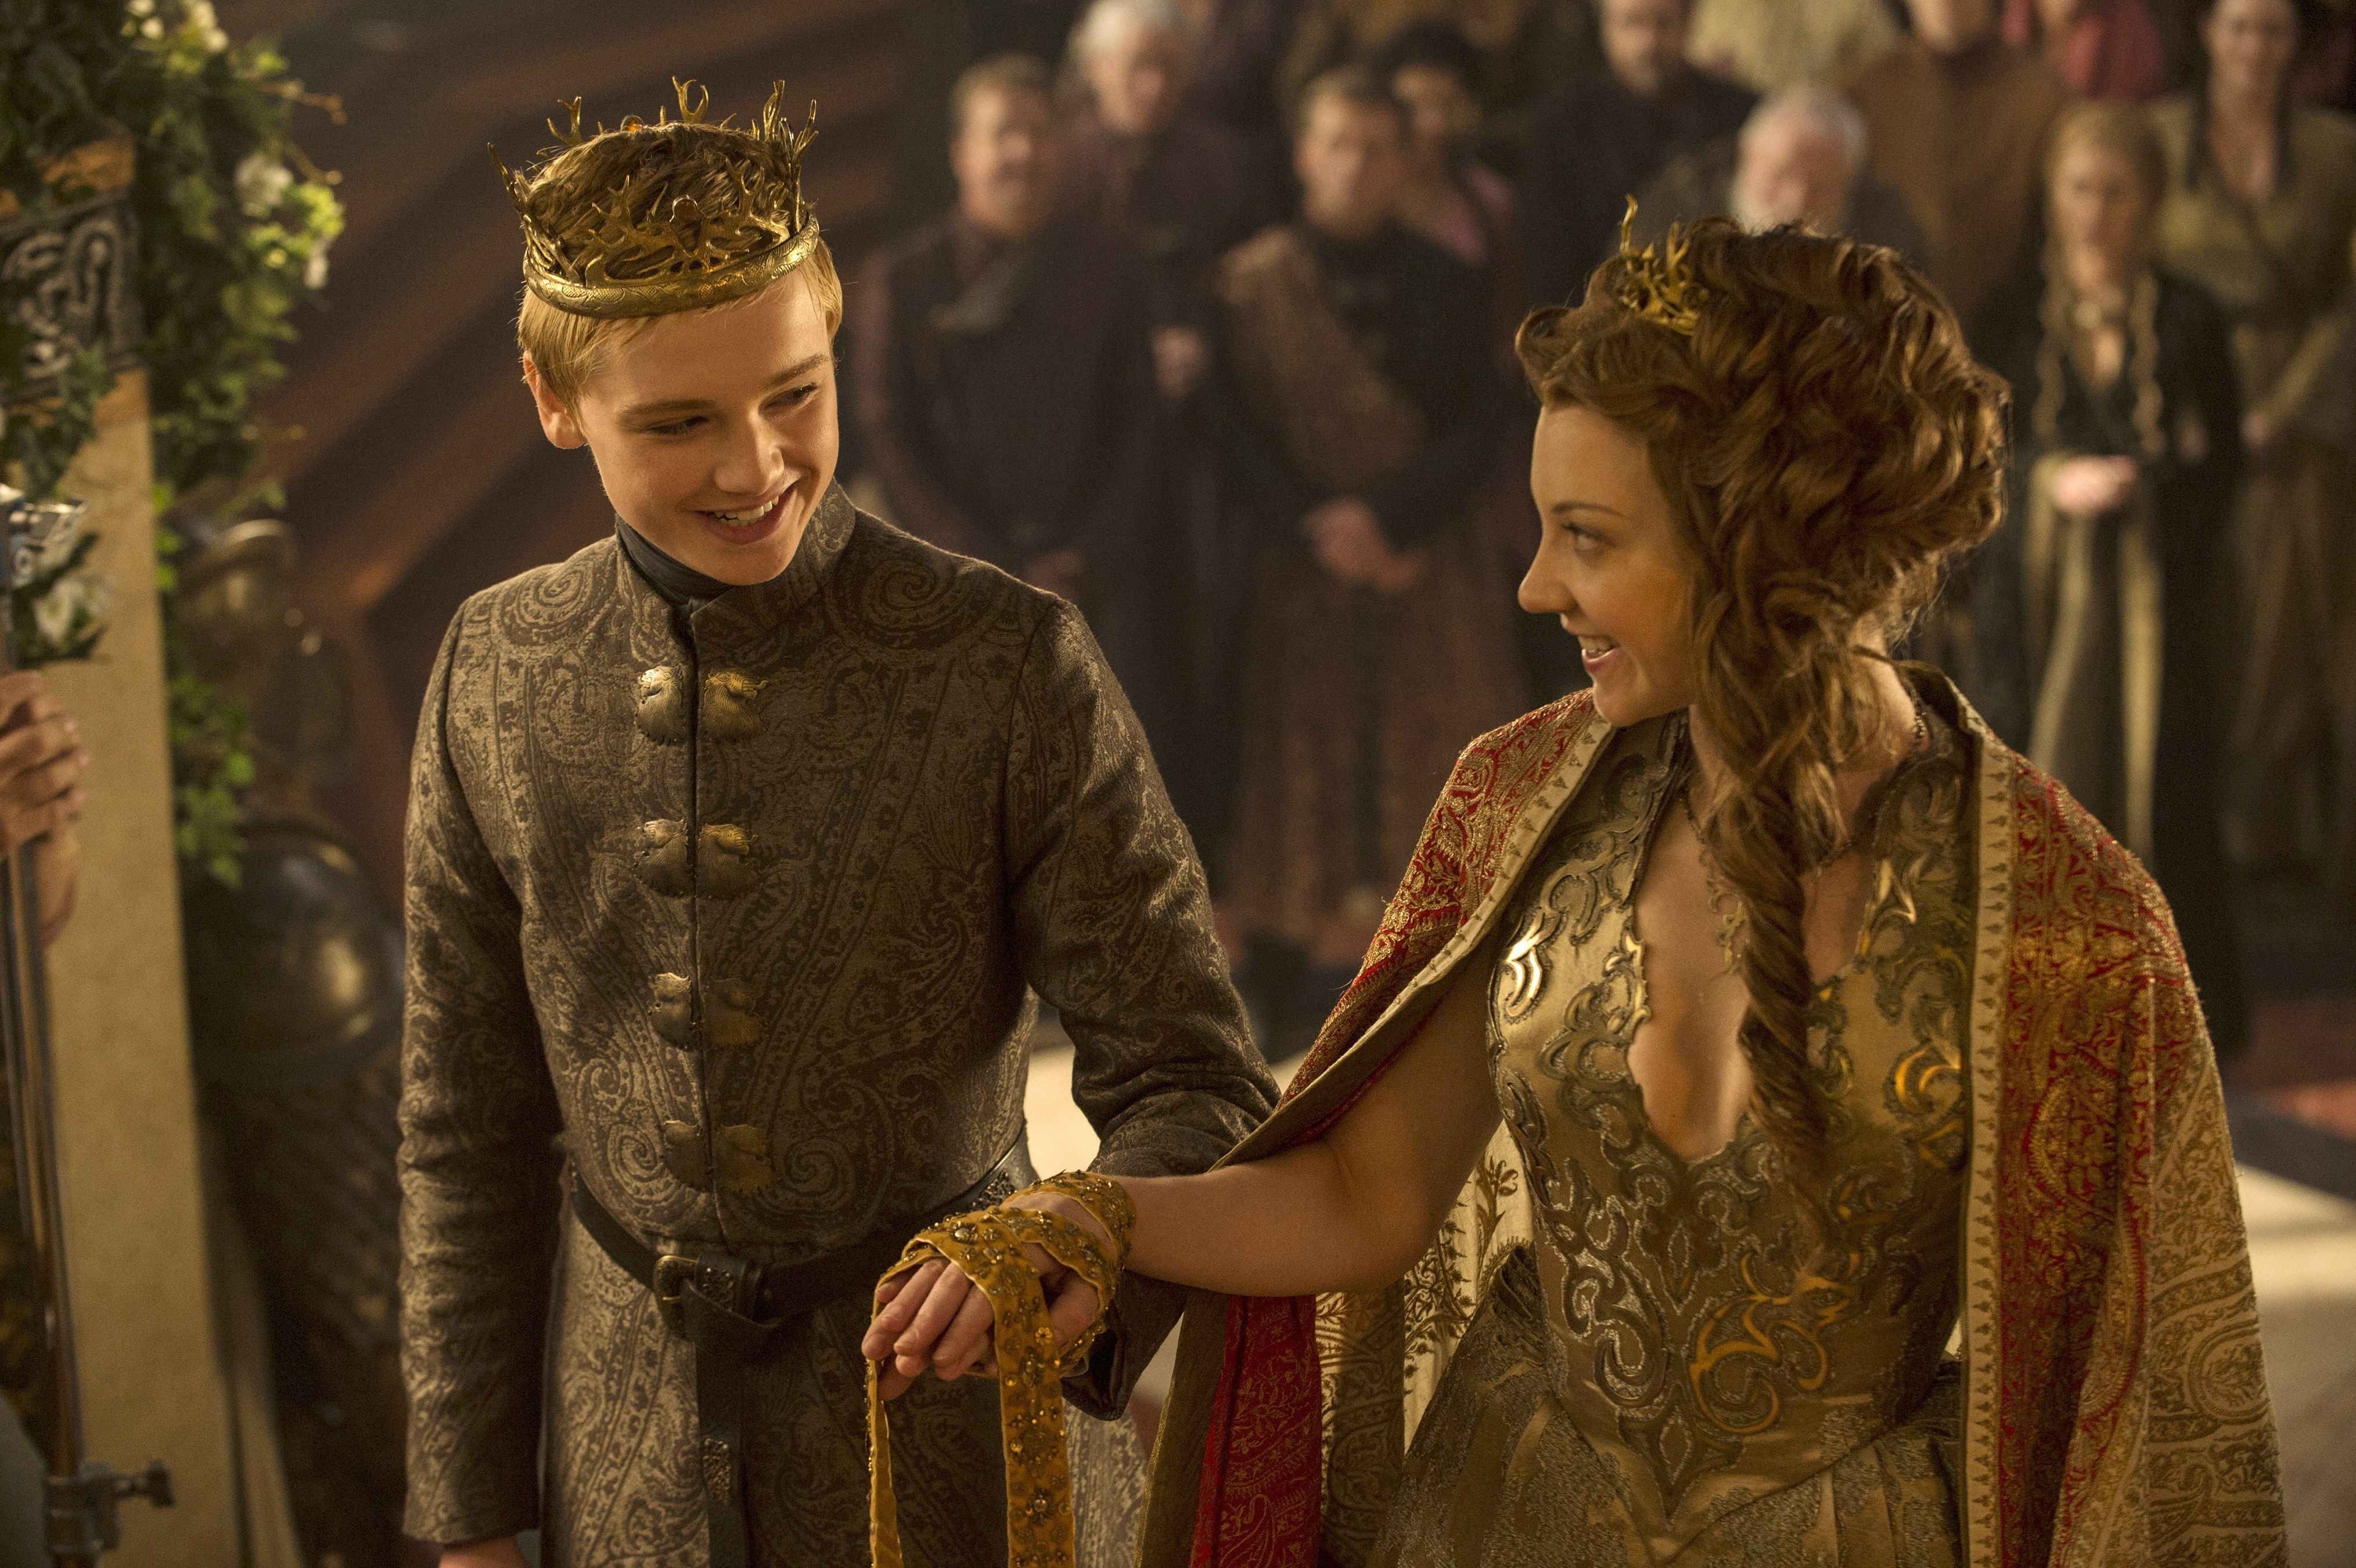 Tommen and myrcella dating after divorce